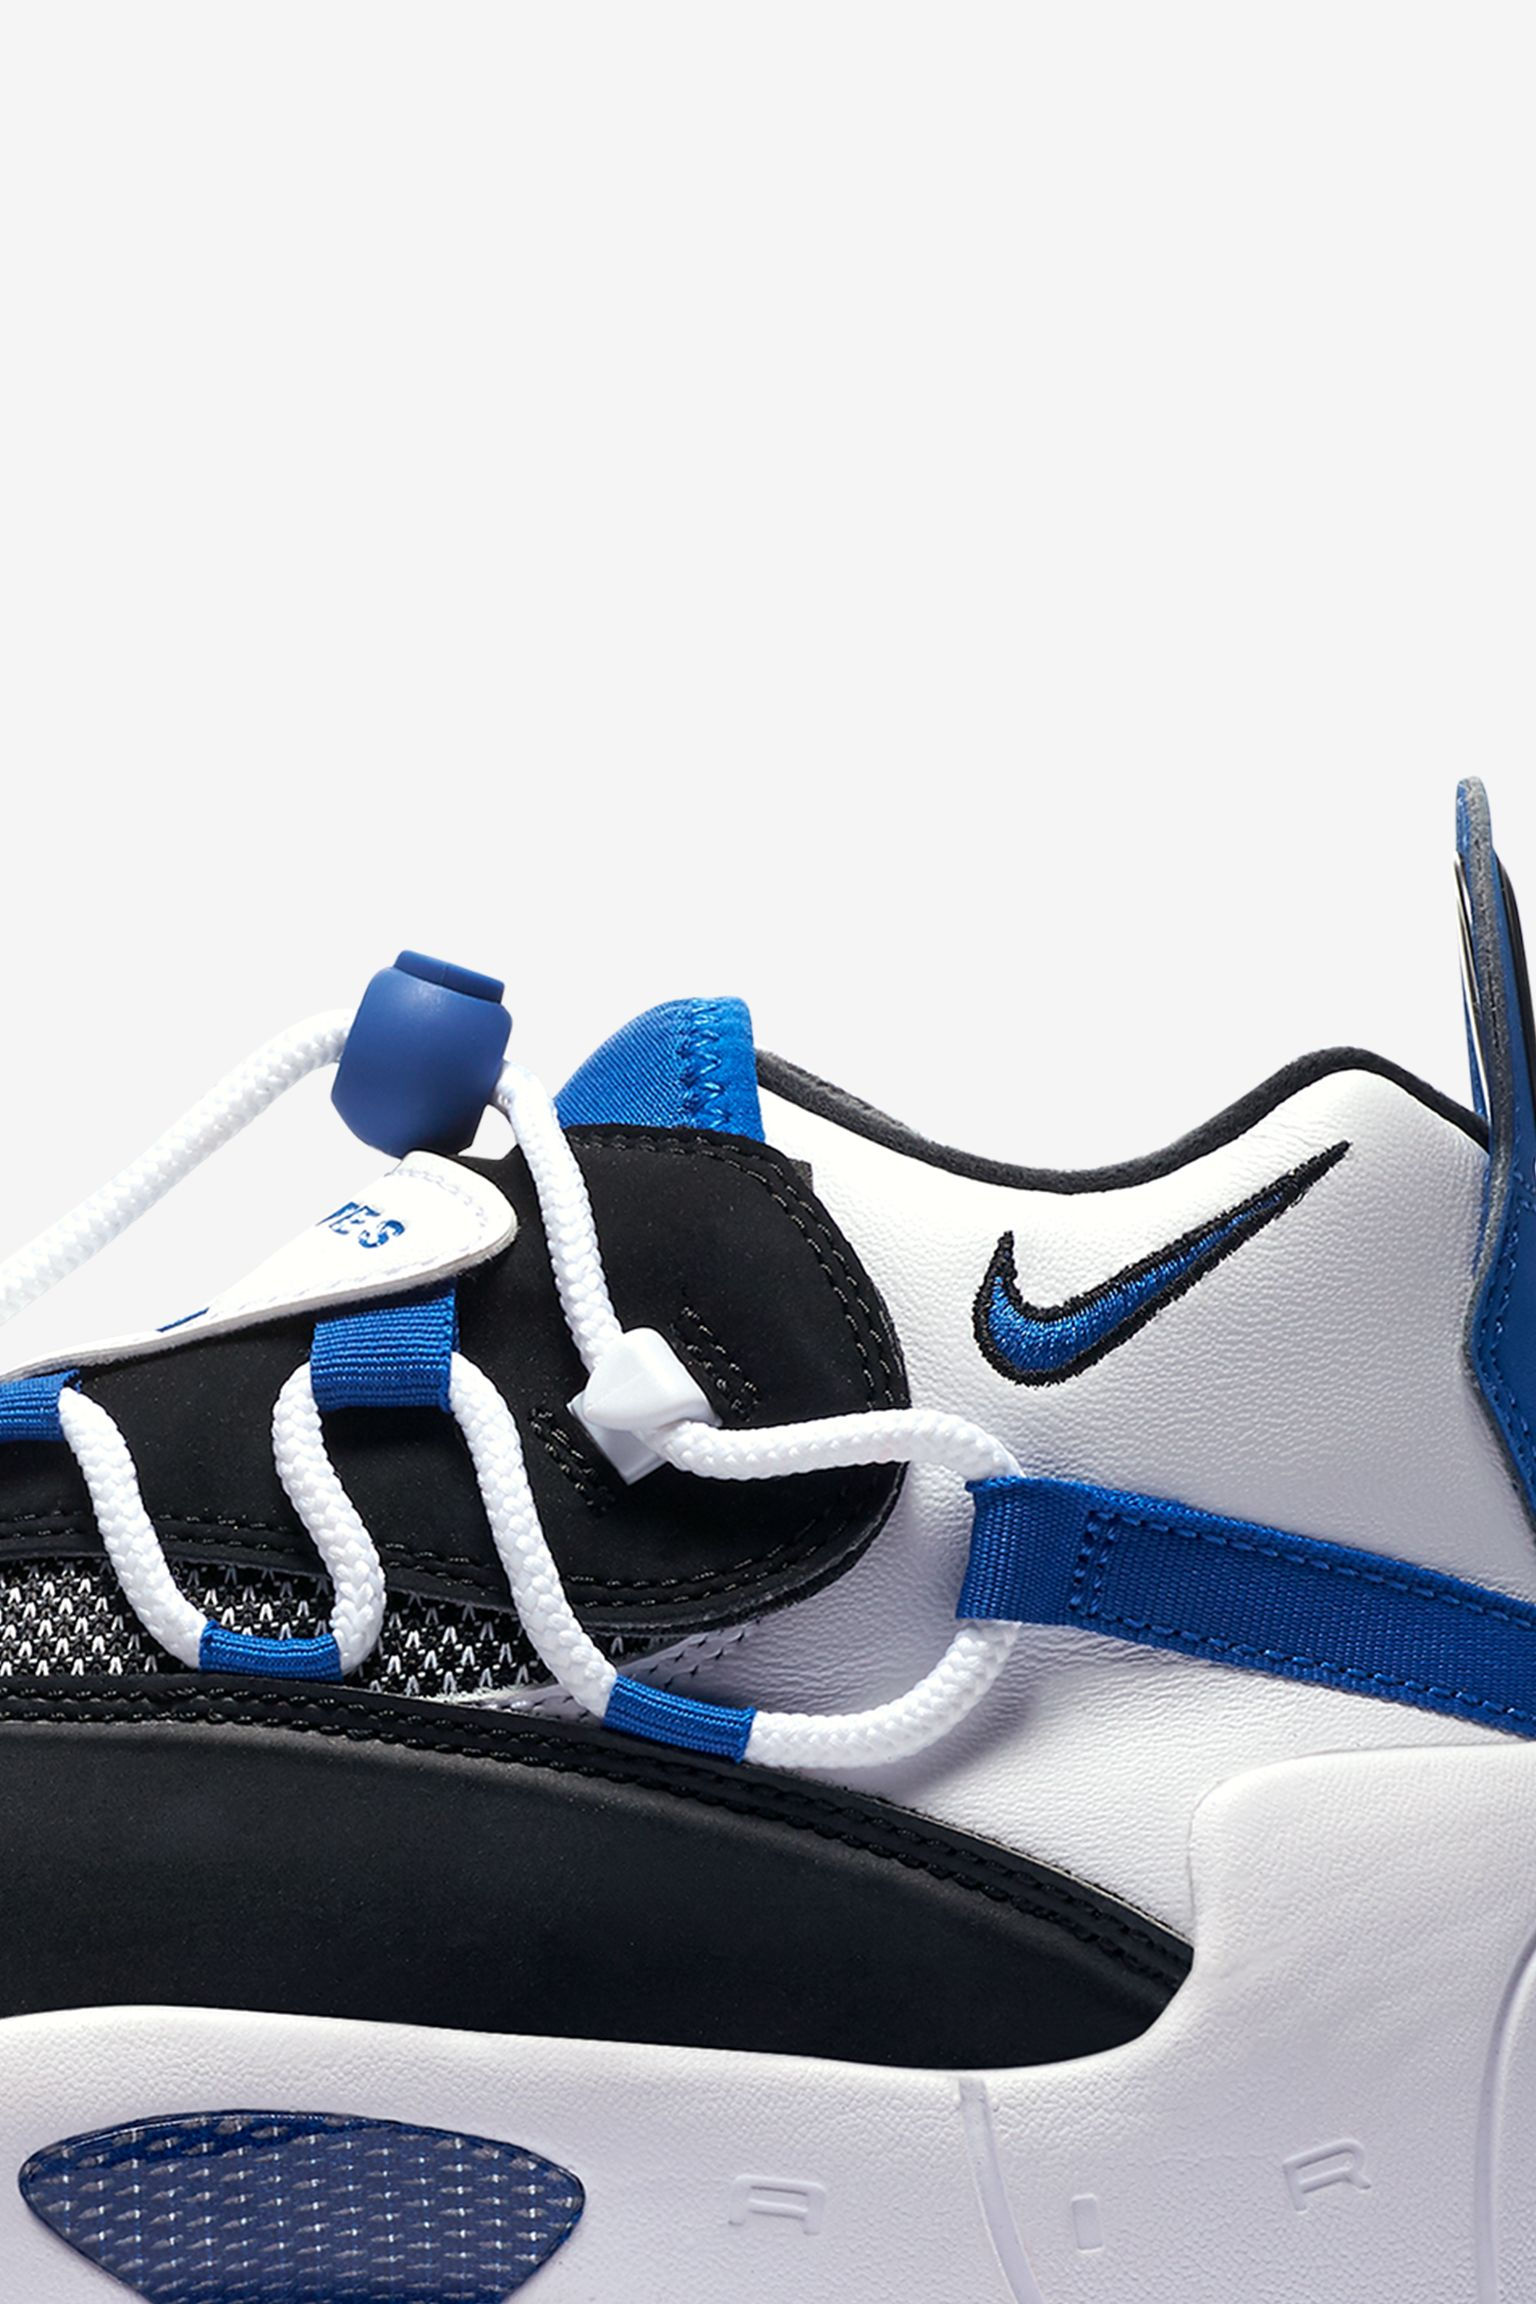 Women's Nike Air Swoopes II 'White & Black & Game Royal' Release Date